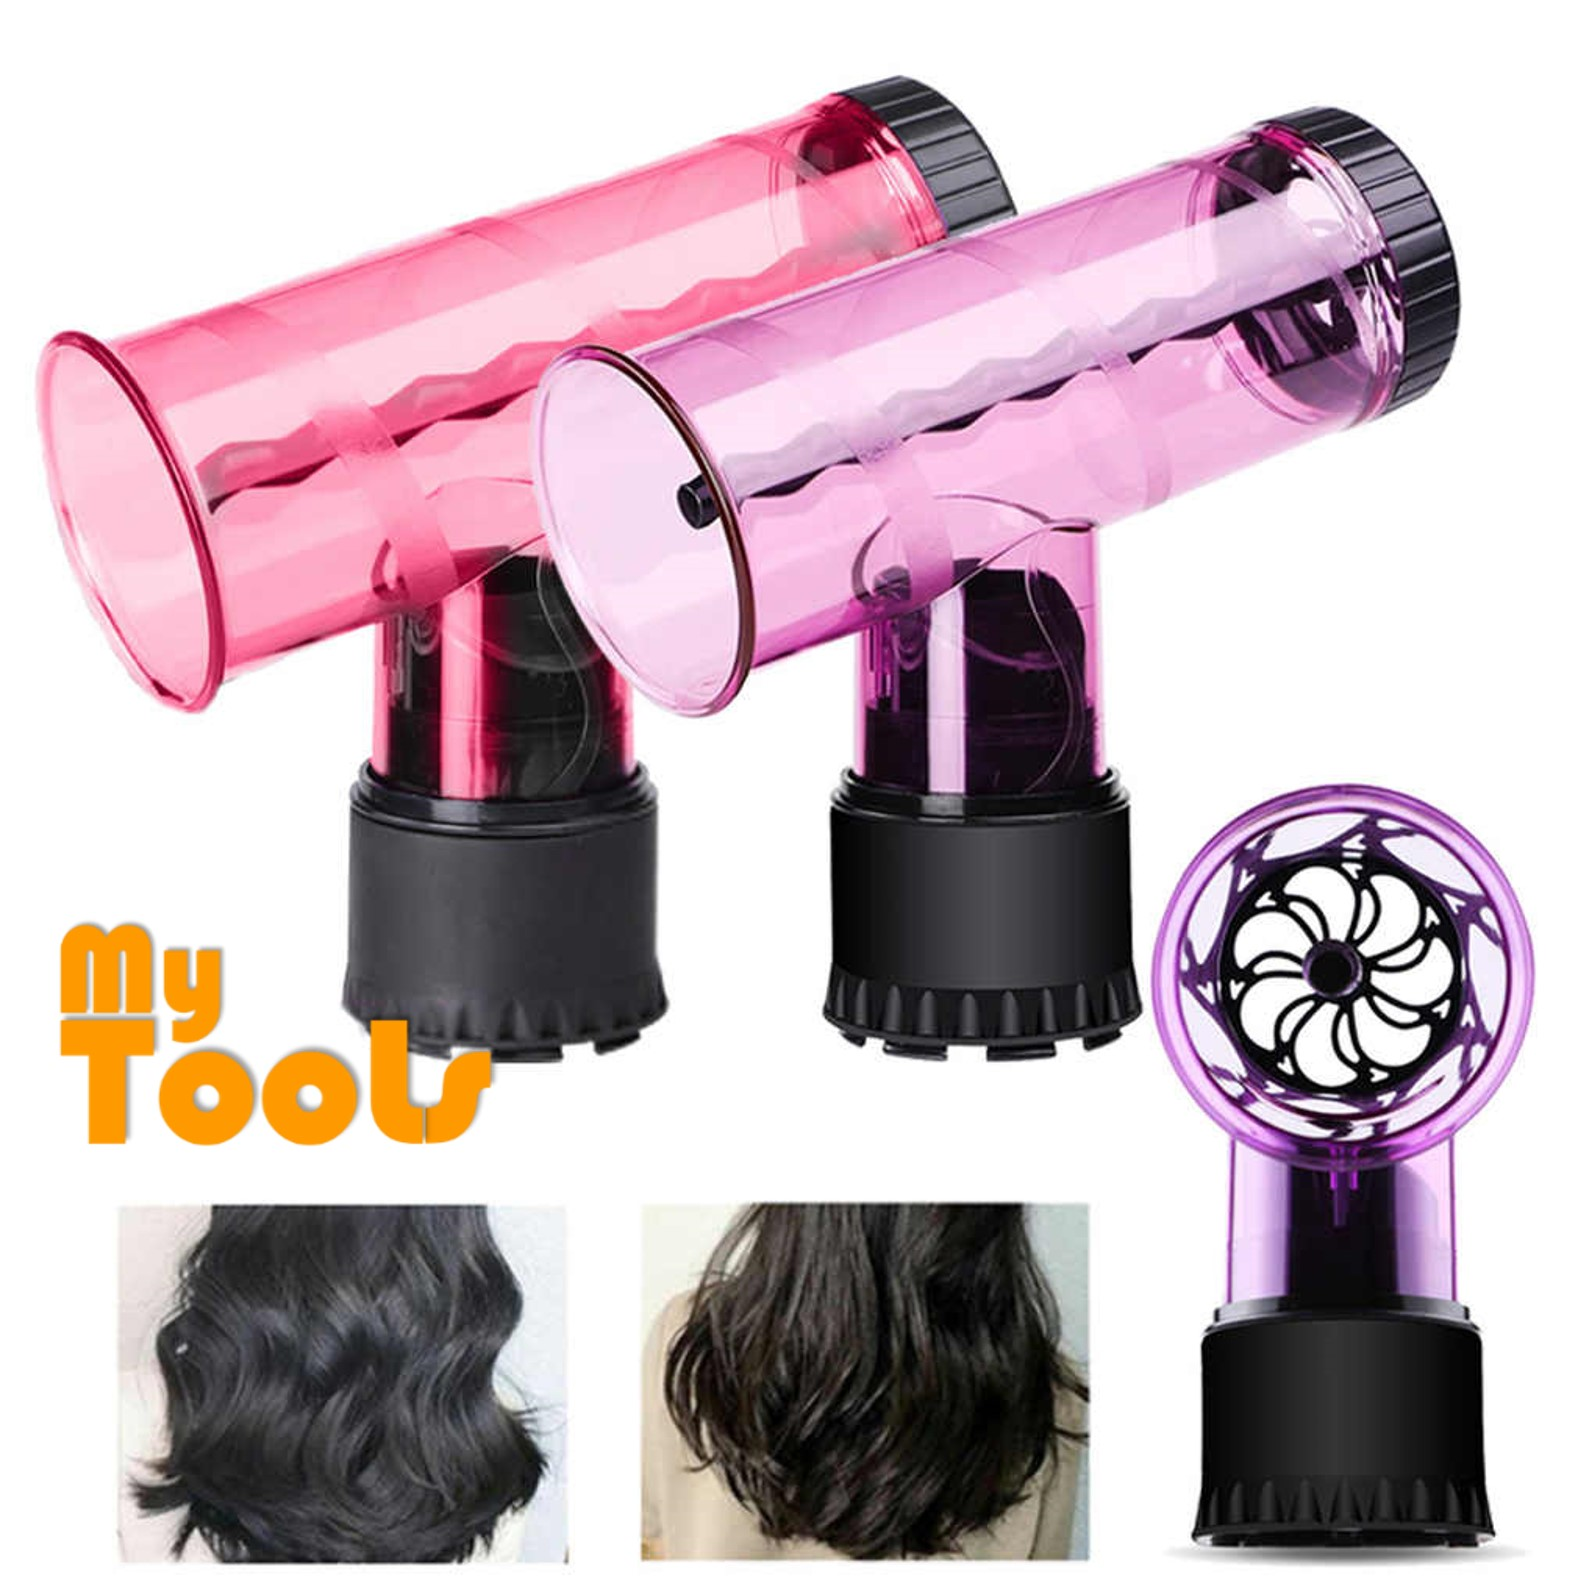 Mytools Hair Curler Hair Dryer Adapter Tornado Hood Big Wave Magic Hair Rollers Spin Dryer